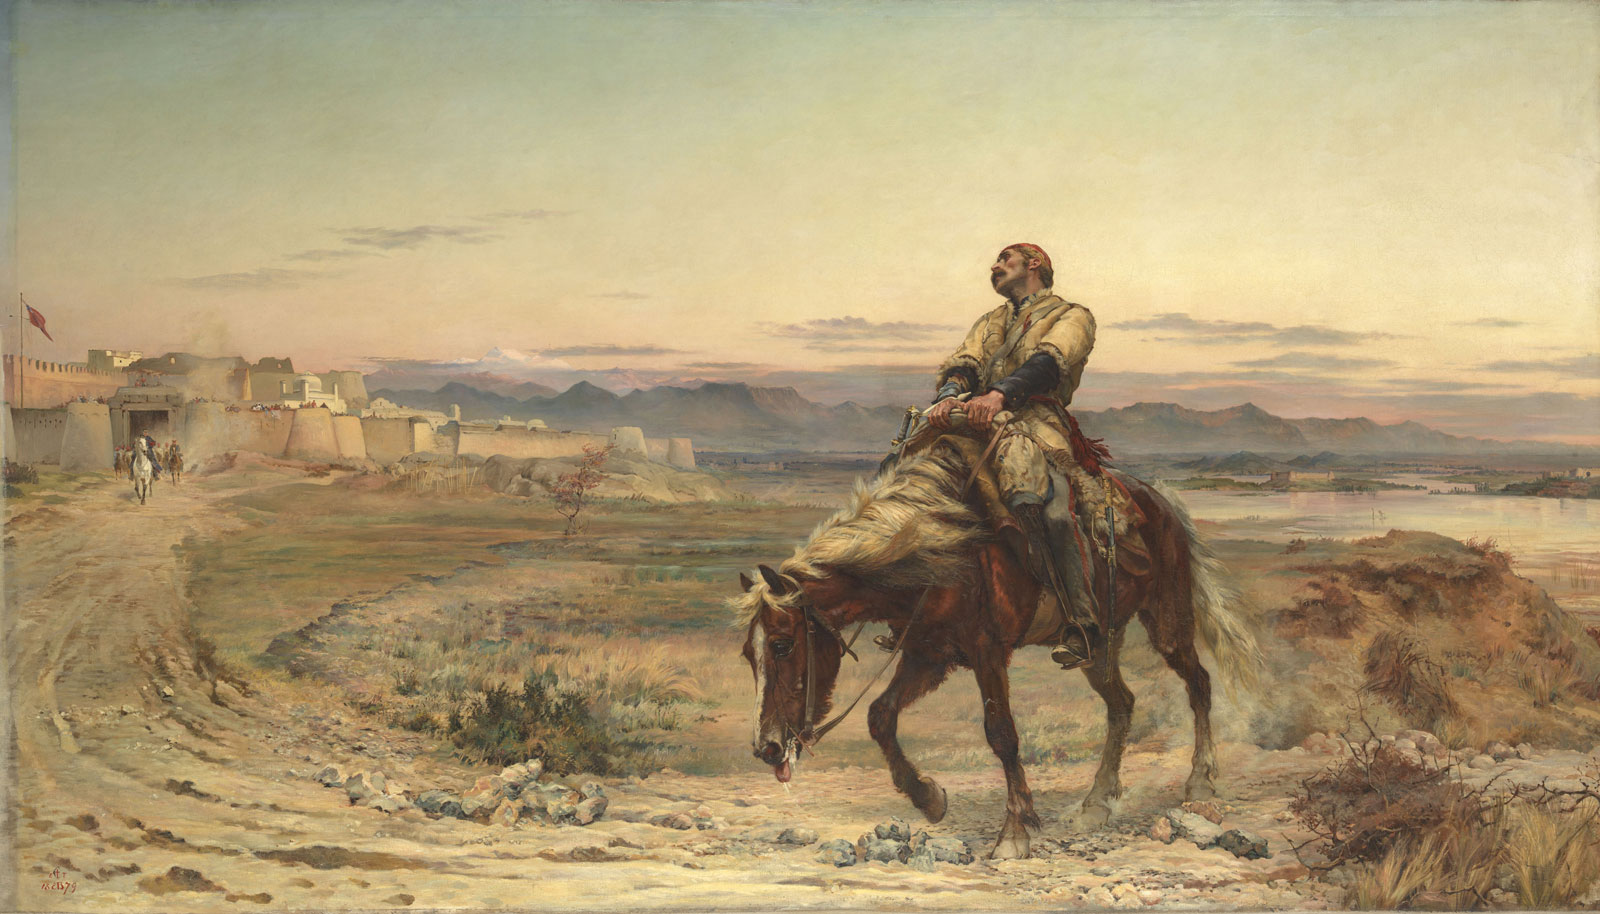 Elizabeth Butler, The Remnants of an Army, 1879